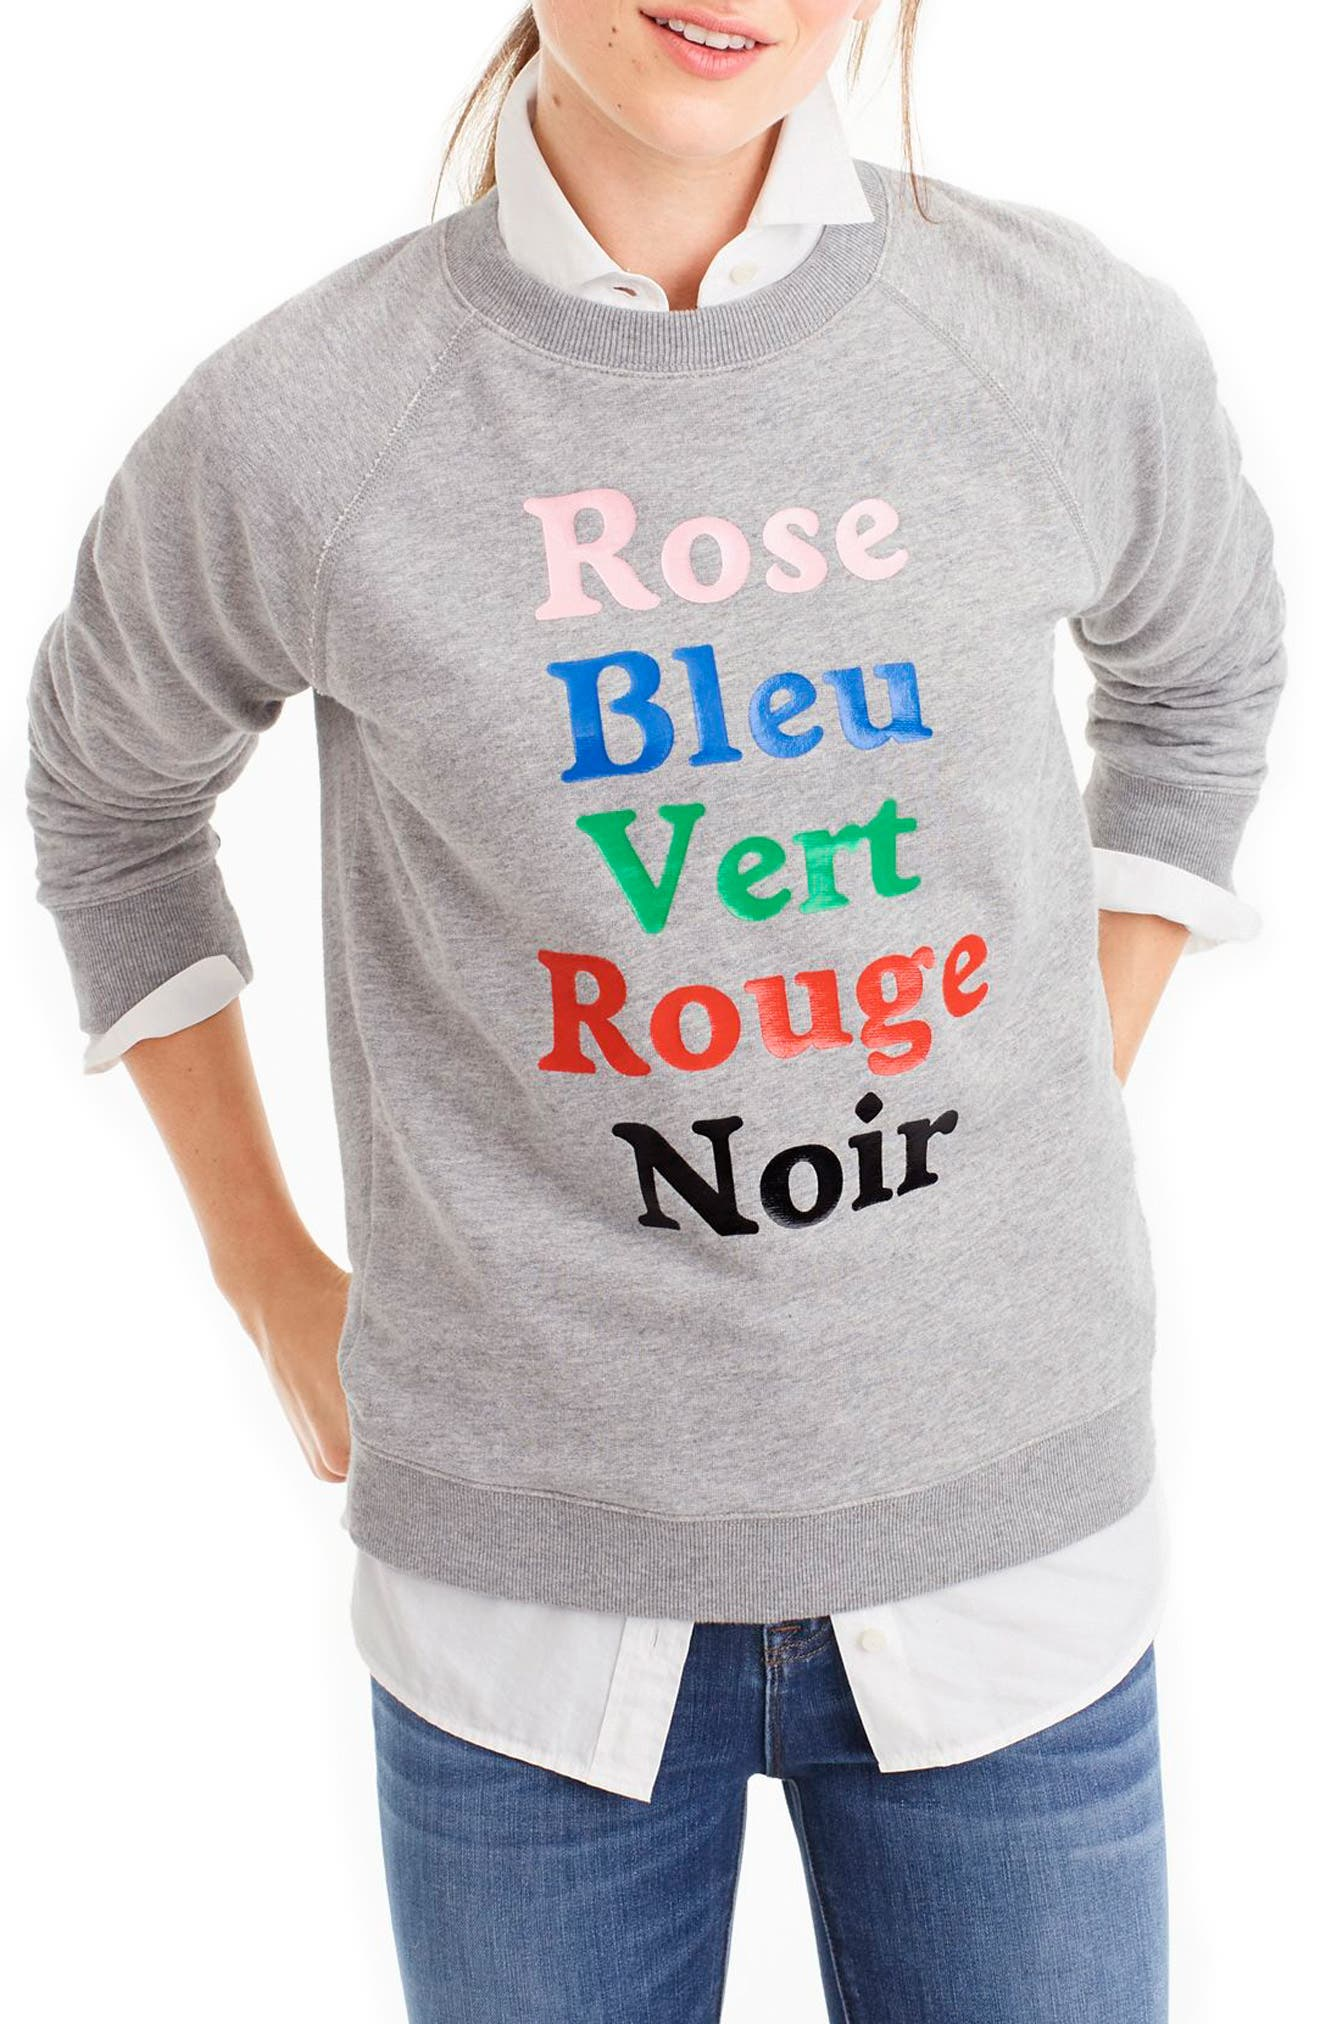 French Colors Sweatshirt,                         Main,                         color, Heather Grey